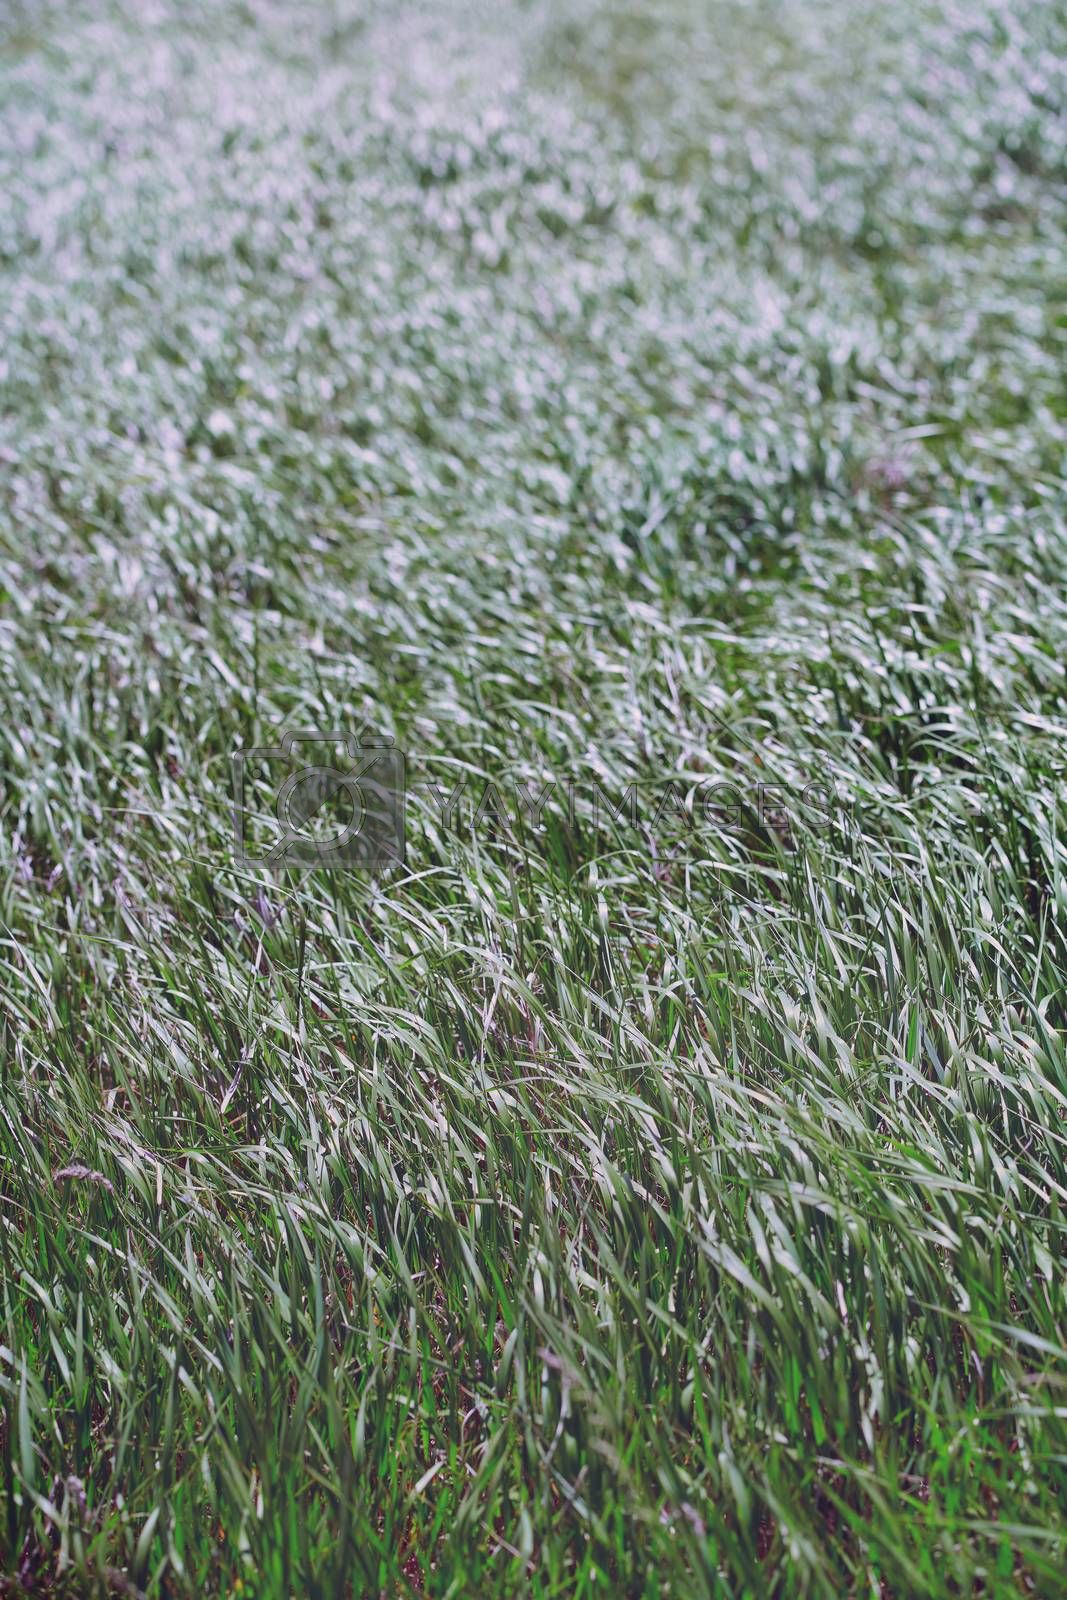 Pattern of the field grass